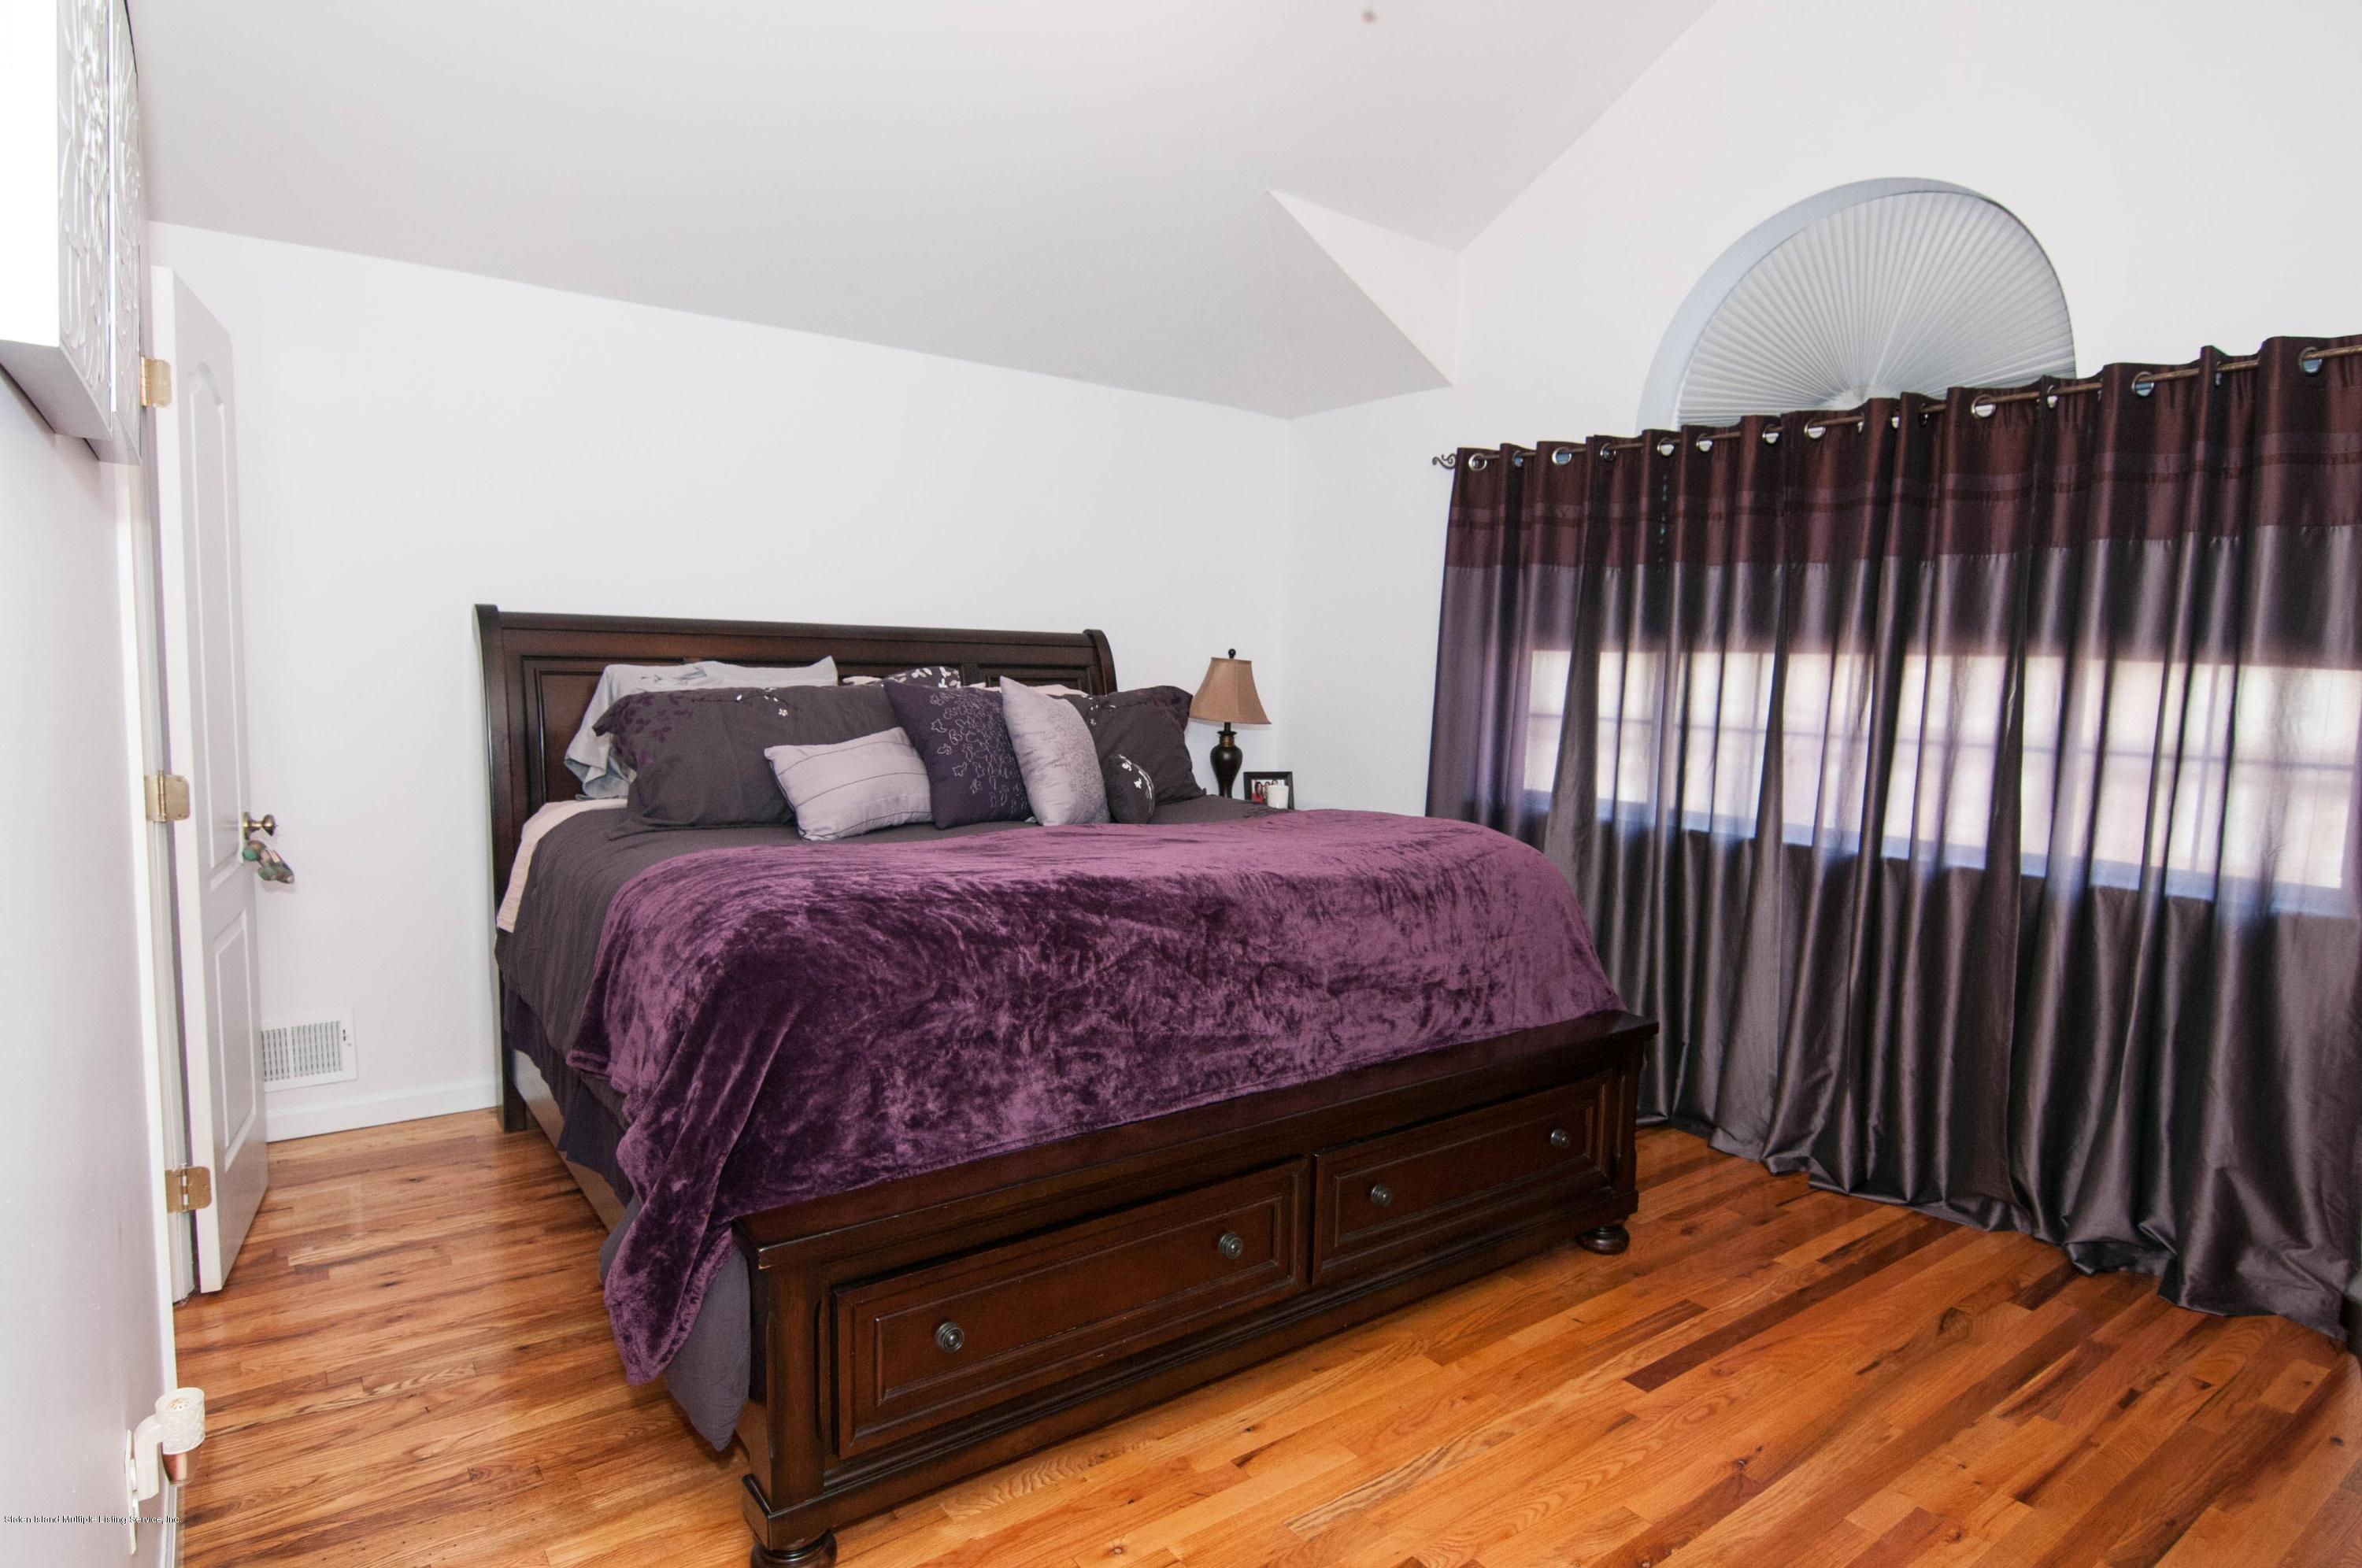 Single Family - Attached 56 Endview Street  Staten Island, NY 10312, MLS-1131439-15